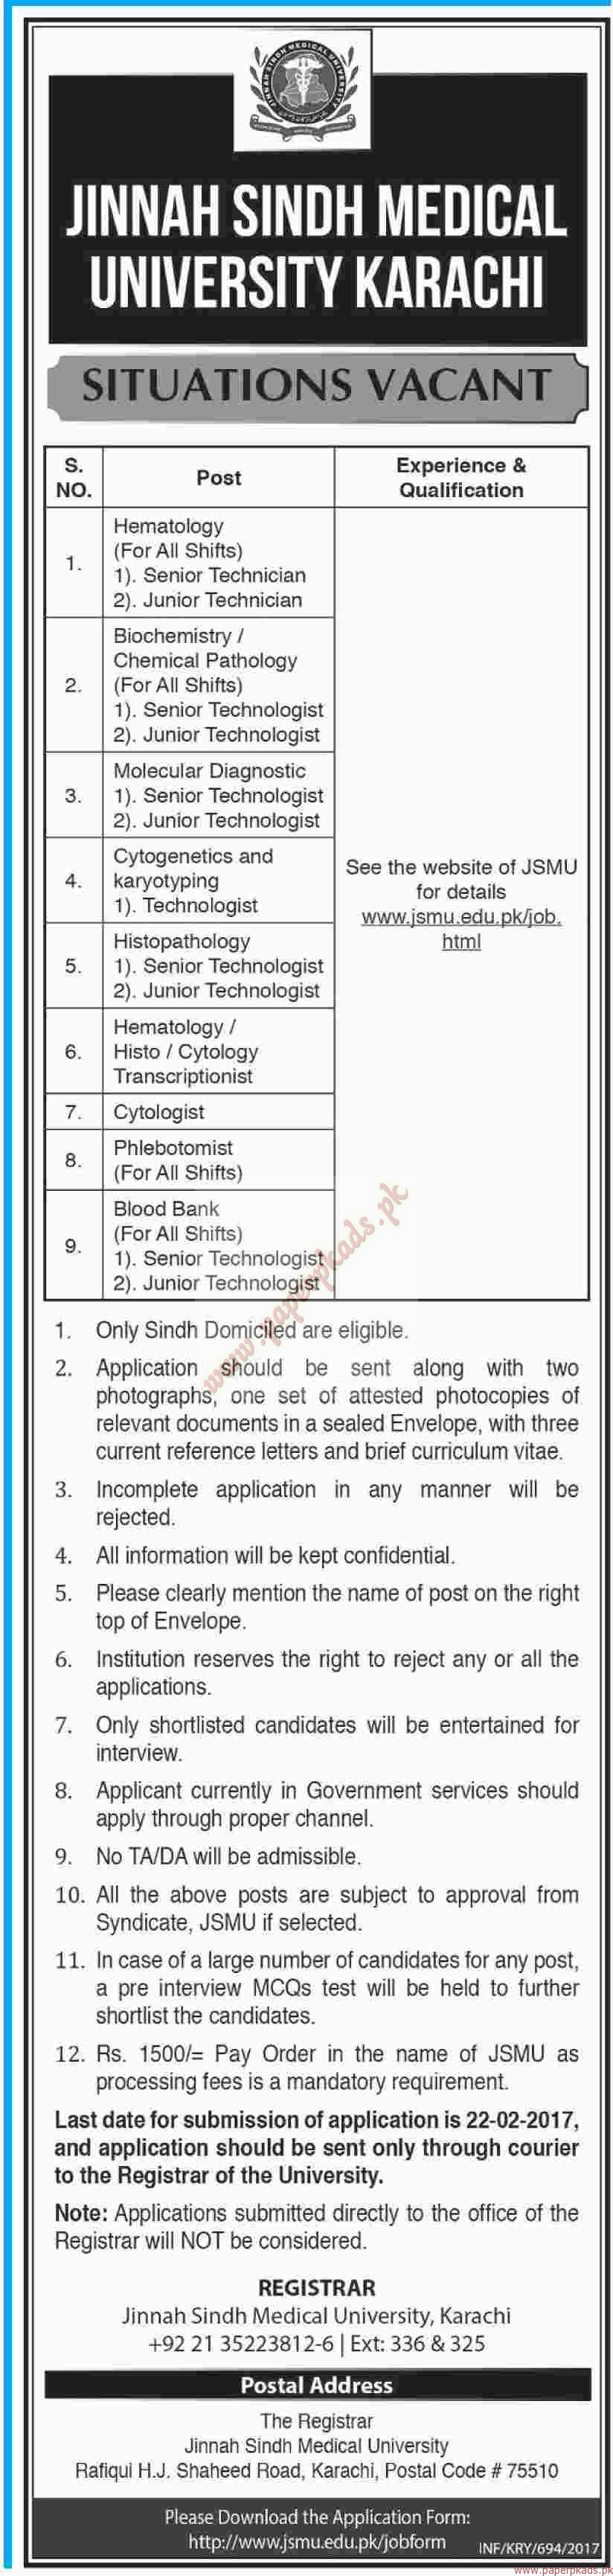 jinnah sindh medical university karachi jobs dawn jobs ads  related articles